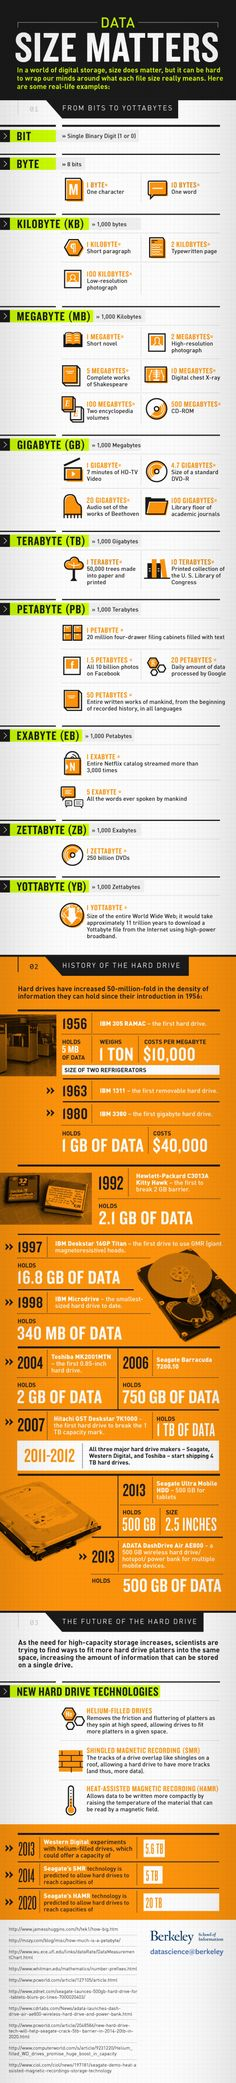 Data Size Matters - Infographic Curated to you by: John McLaughlin, StockCoach at: www.DayTradersWin.com - call for your FREE day trader Evaluation - career and business questions: 949-218-4114